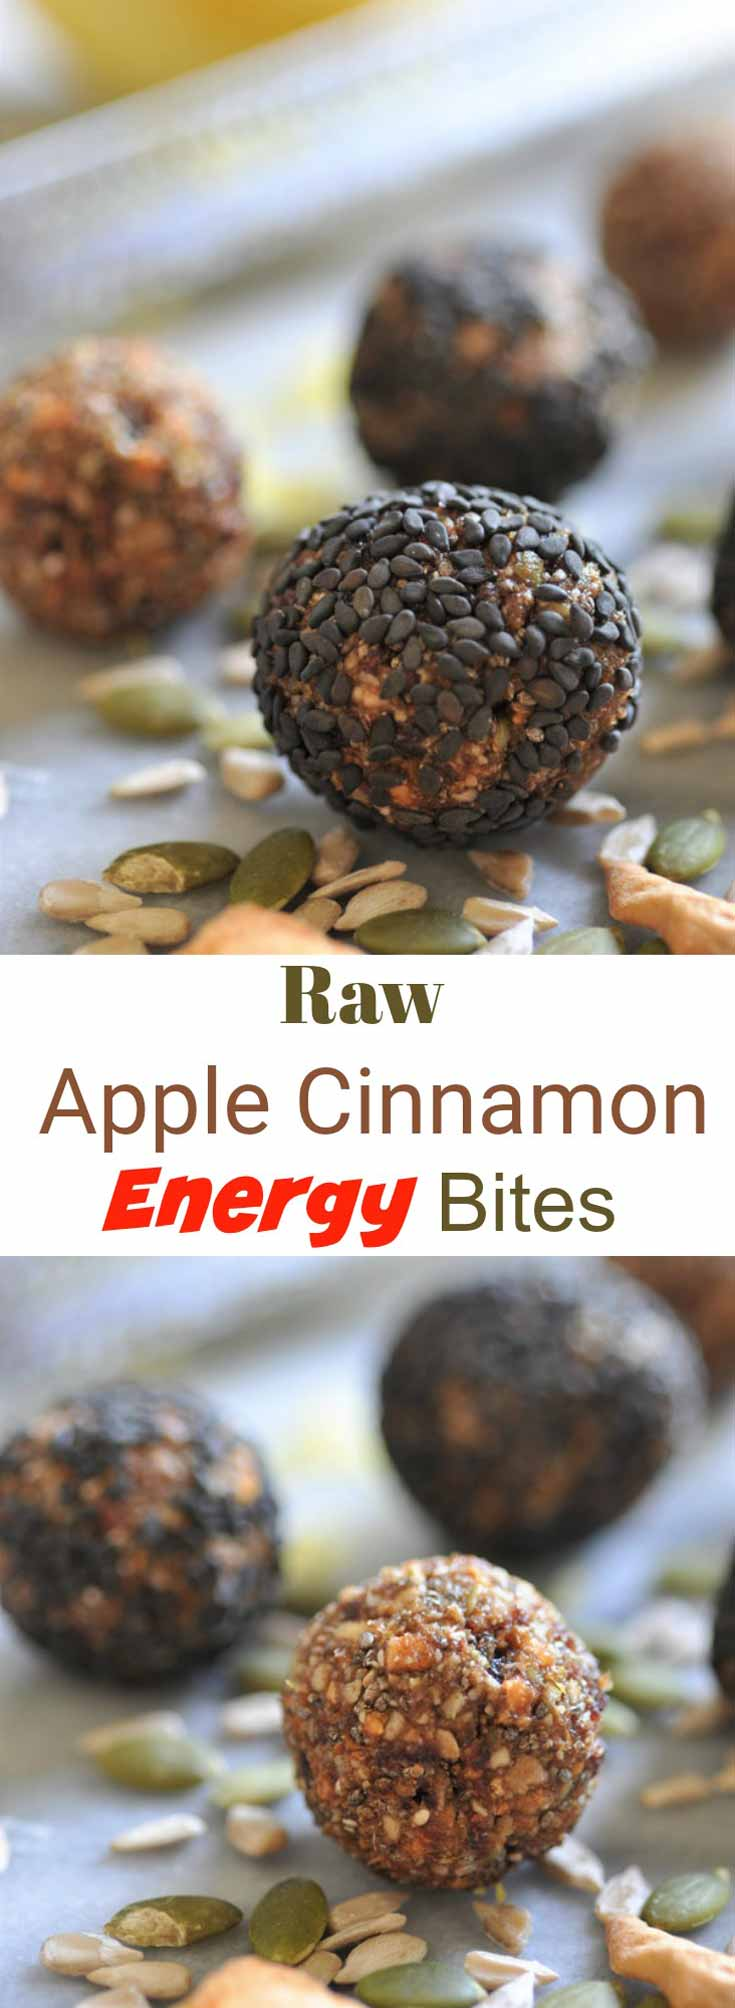 A Pinterest pin for apple cinnamon energy bites with two pictures of the bites.